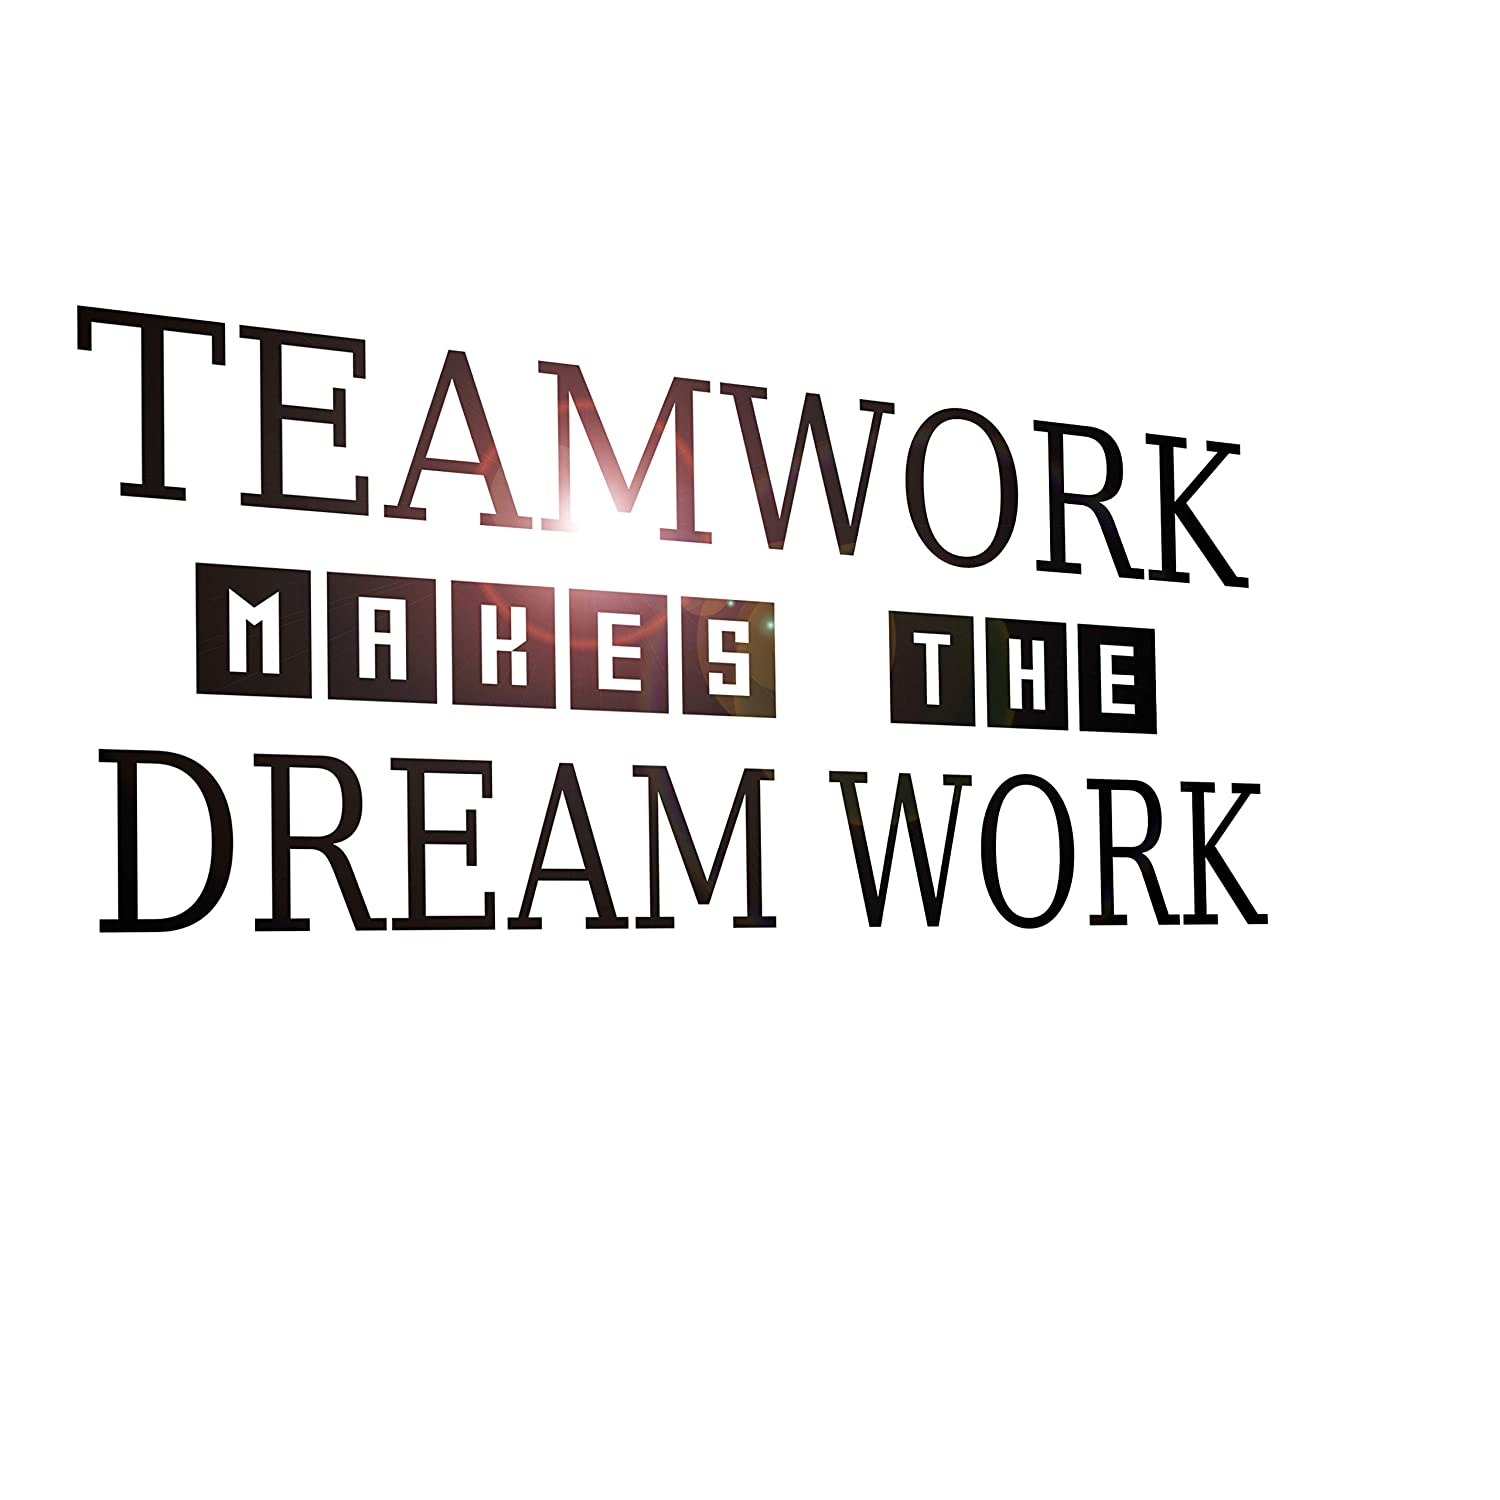 Vinyl Wall Decal Stickers Motivation Quote Words Inspiring Teamwork Dream Work 2331ig (22.5 in x 10 in)